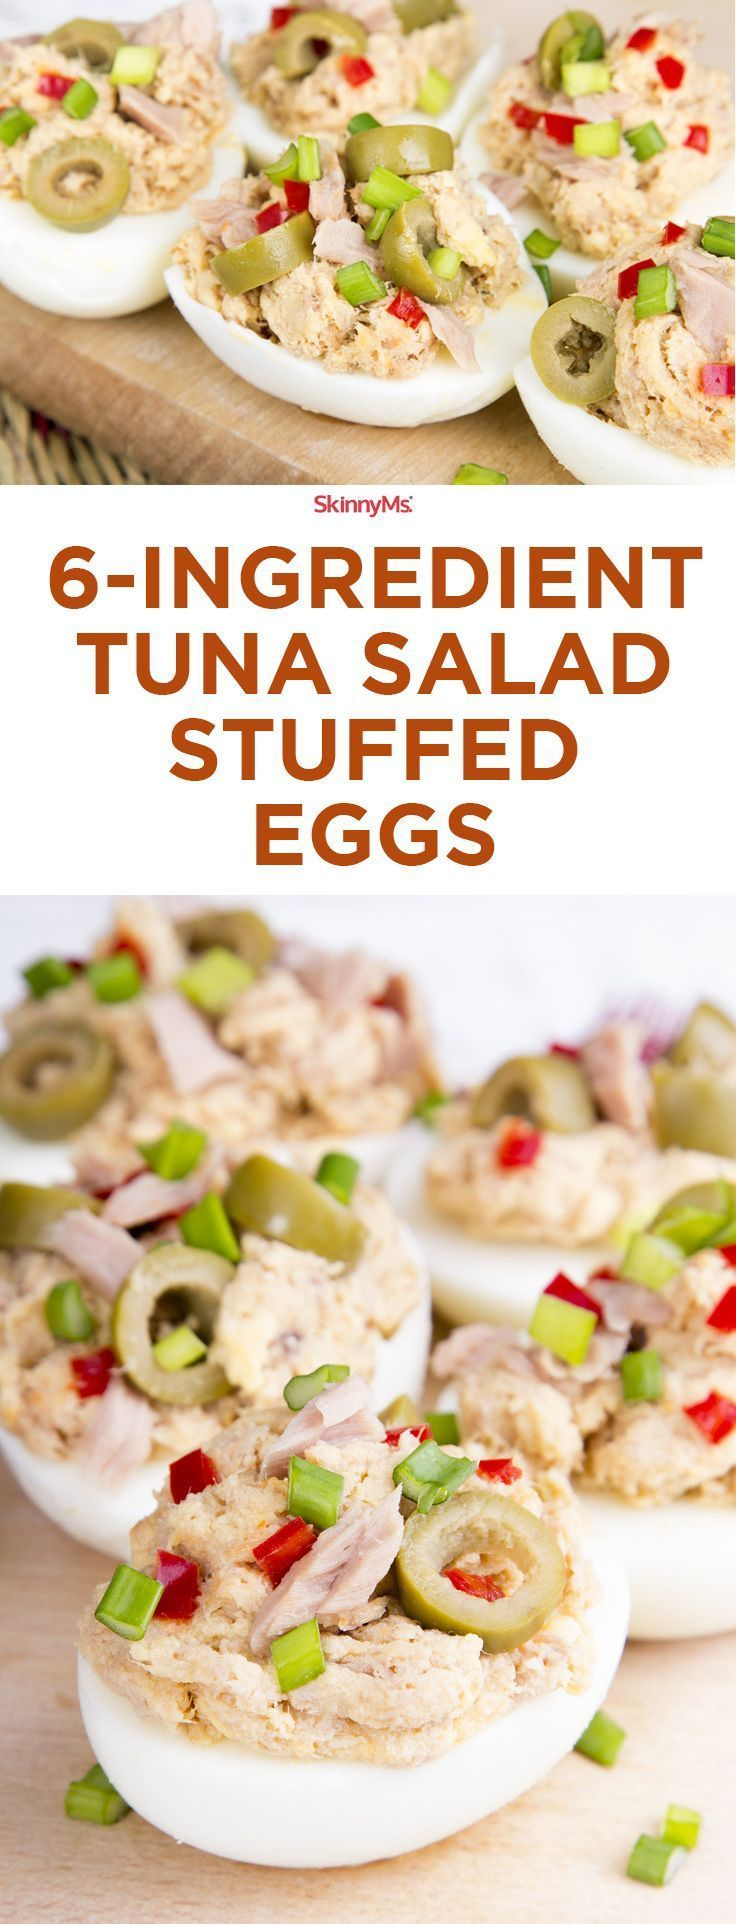 Best 25 cucumber snack ideas on pinterest cucumber for Tuna fish salad recipe with egg